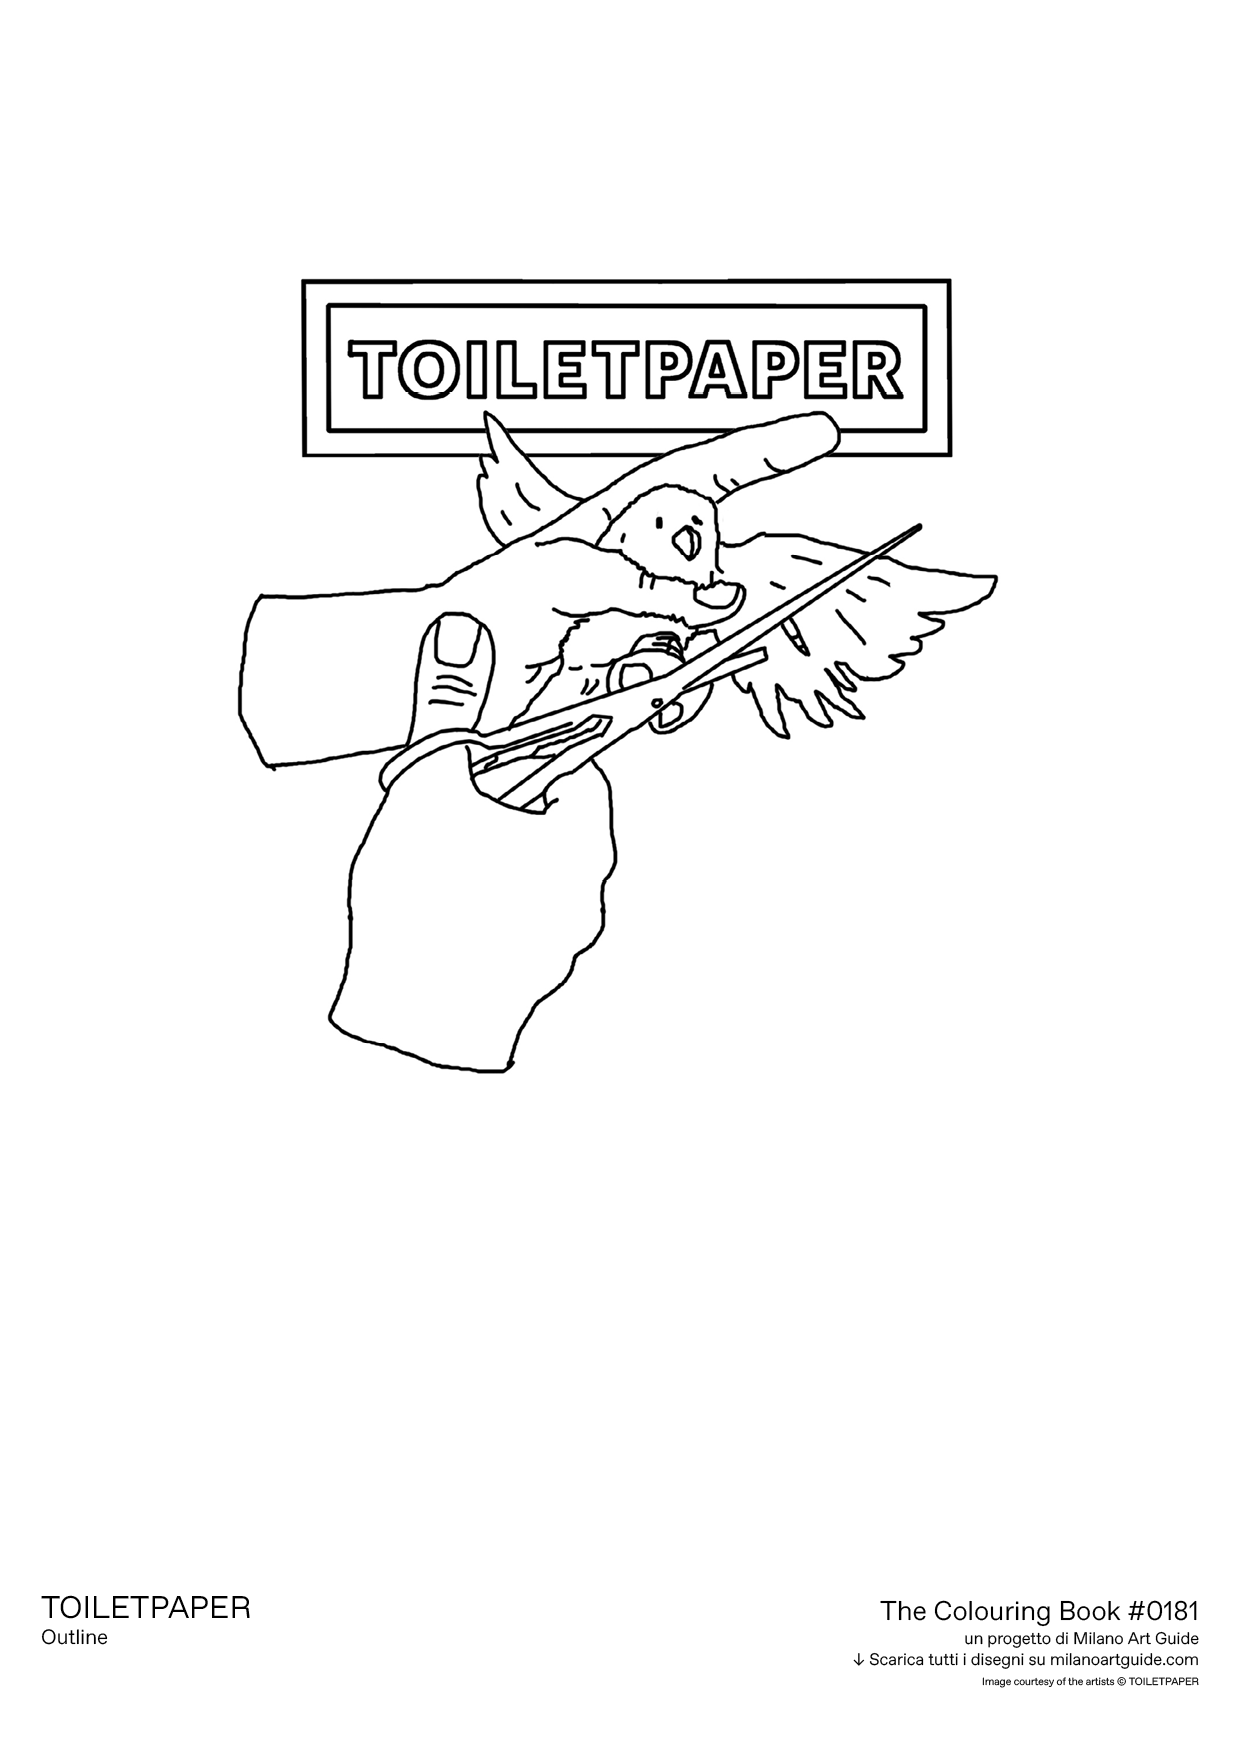 181_TOILETPAPER_THECOLOURINGBOOK_MILANOARTGUIDE.png